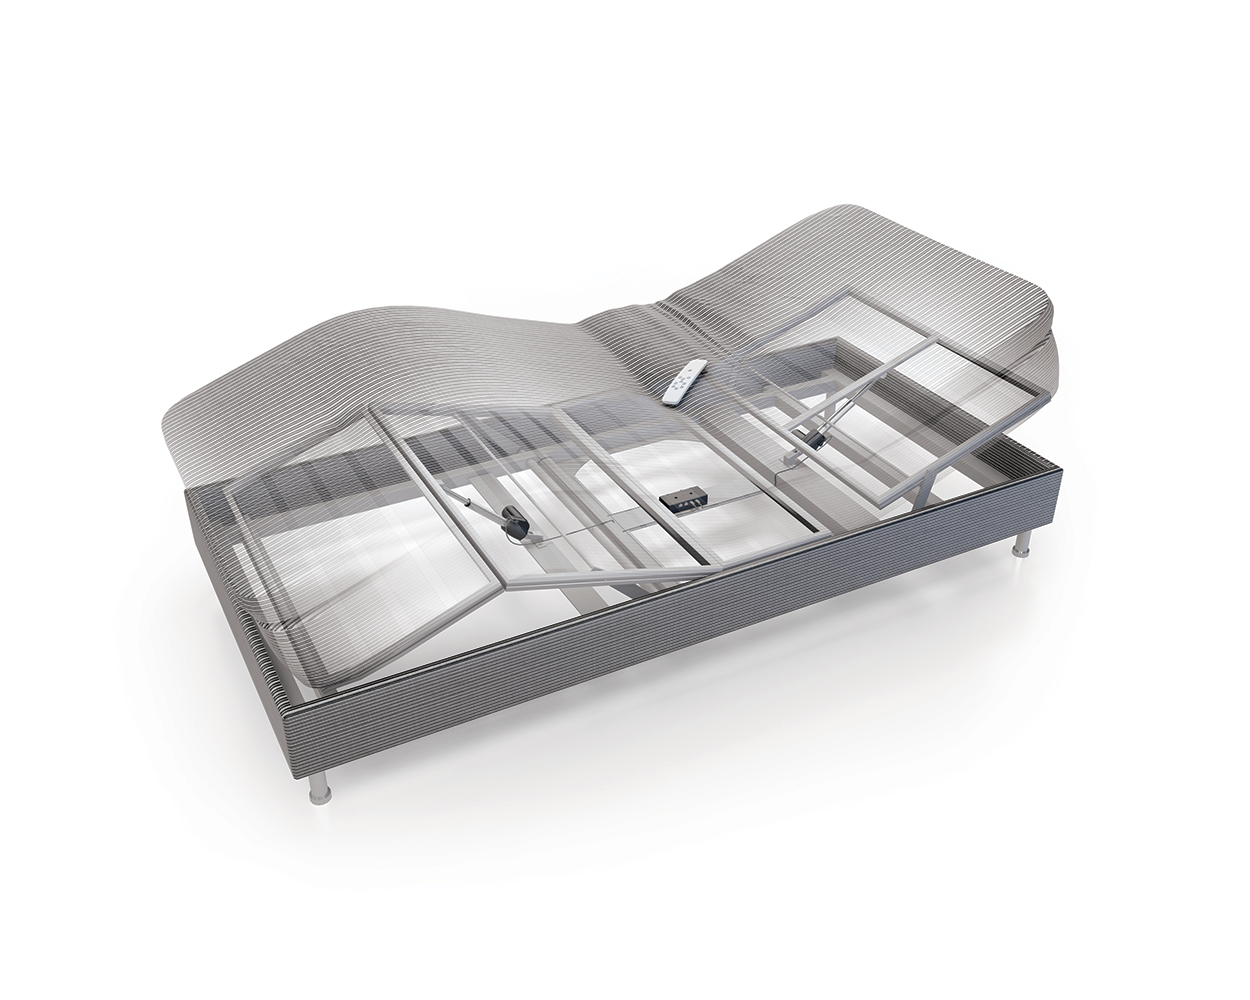 A New Single Actuator System For Leisure Beds Has Been